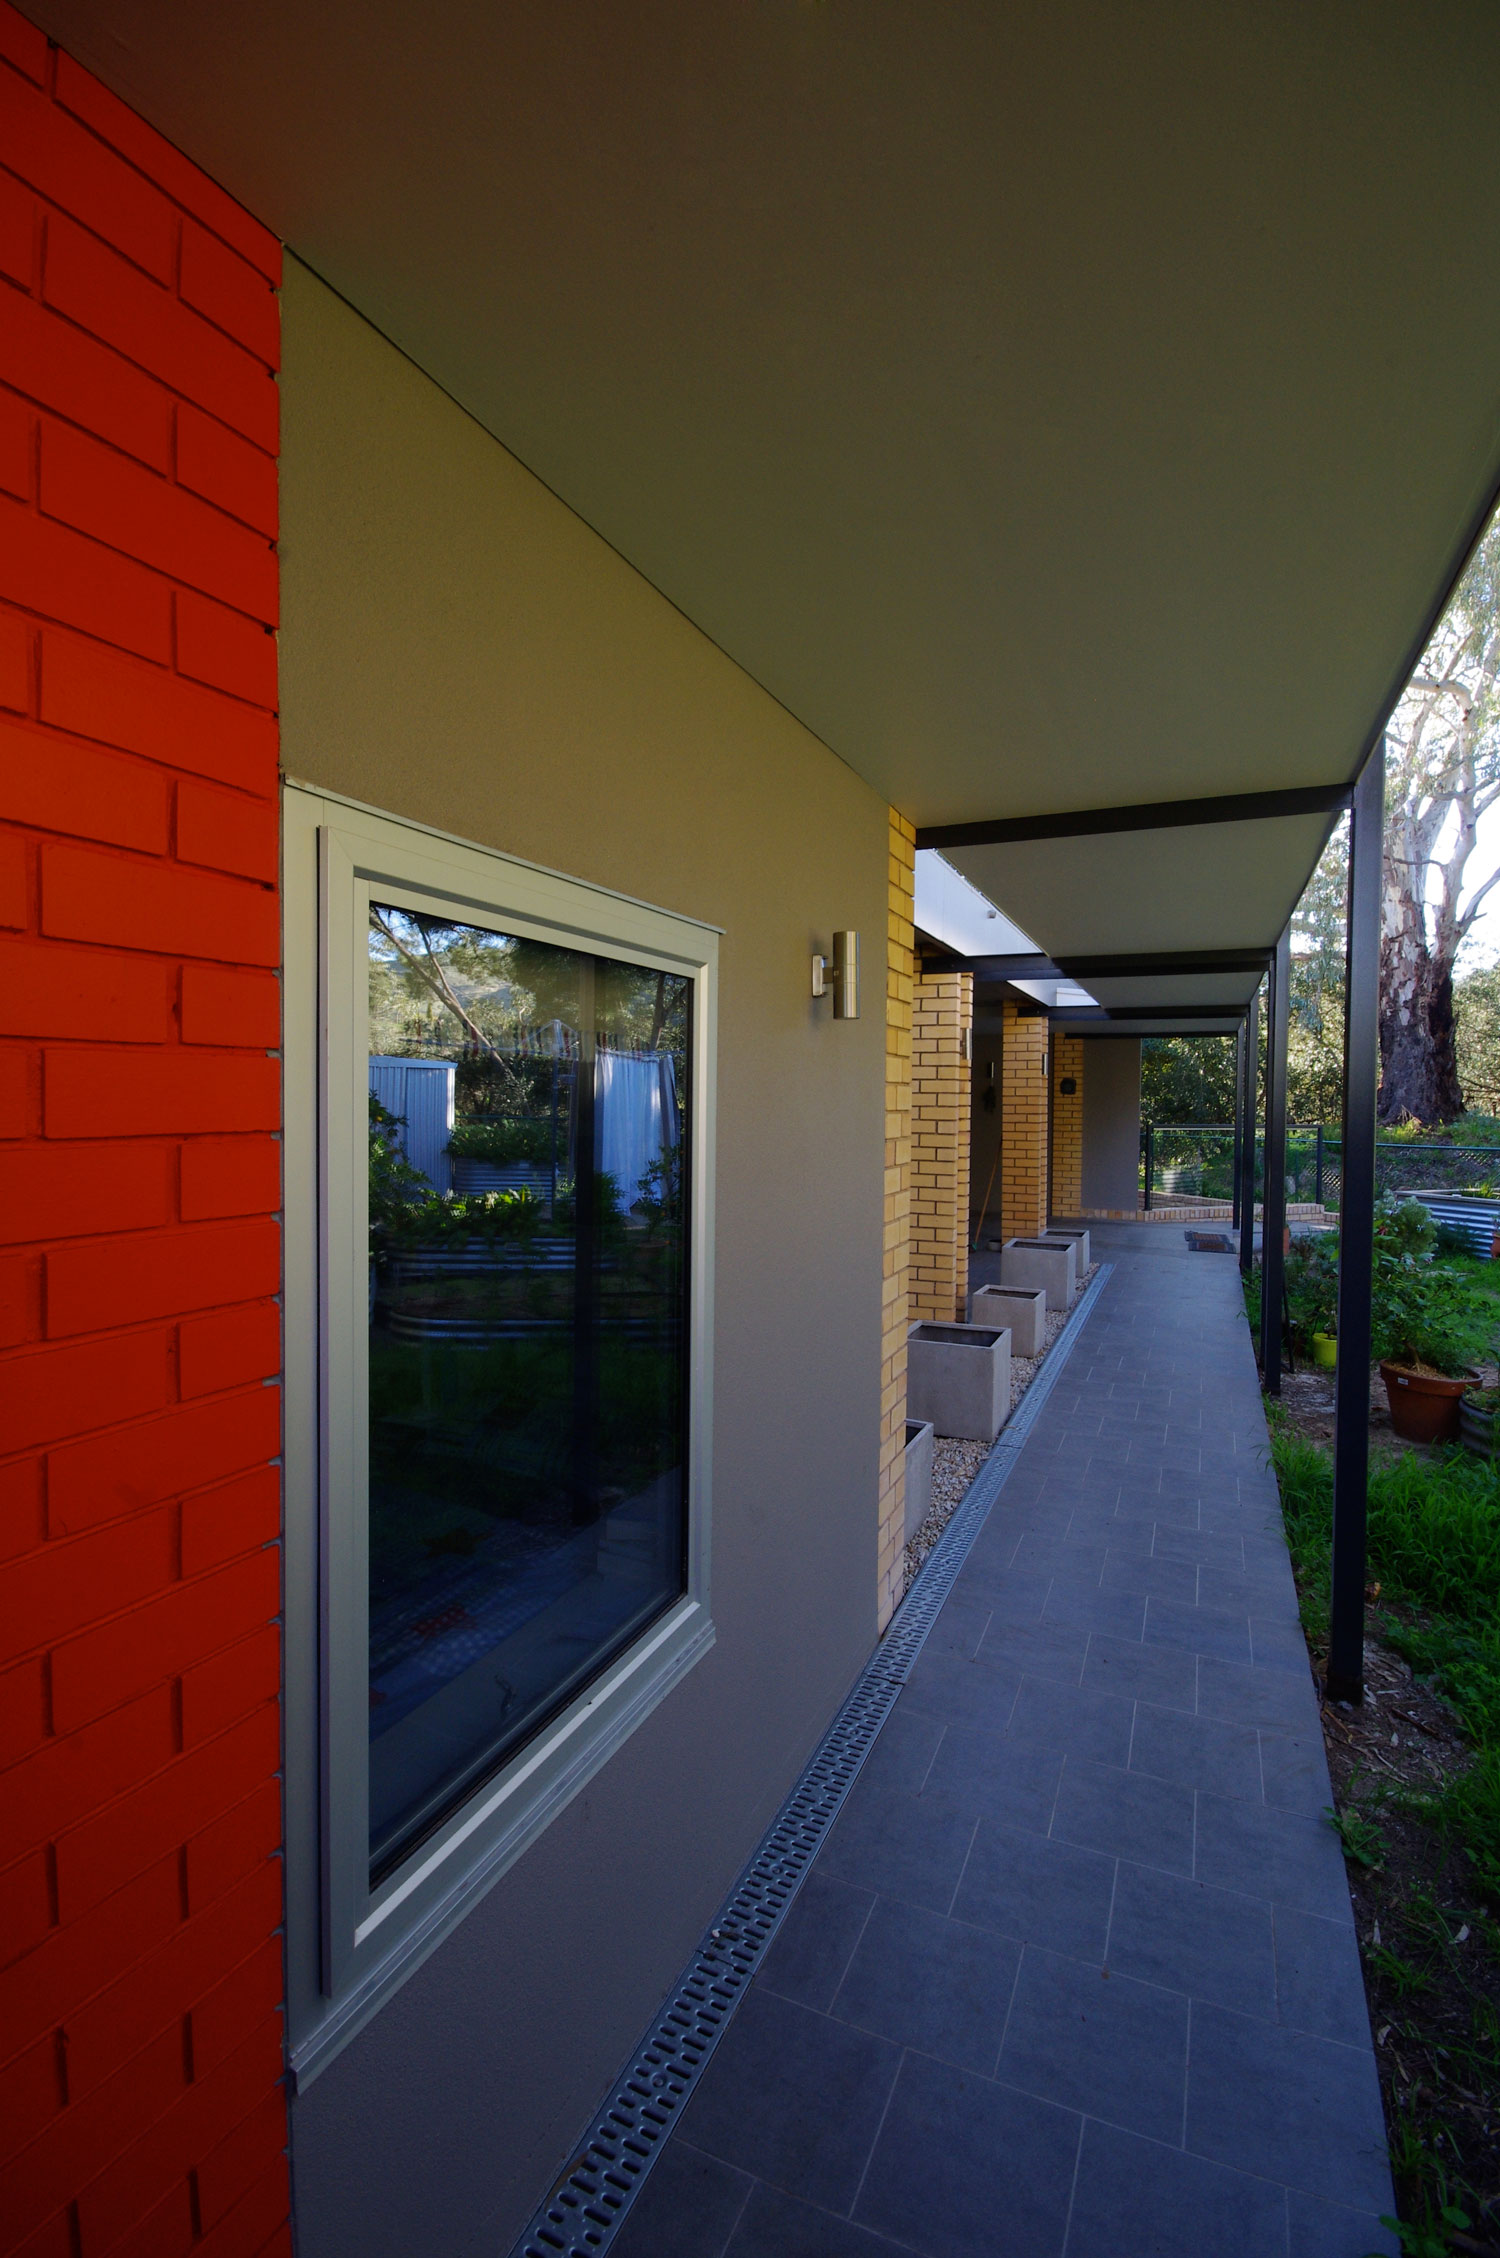 #adelaidehome #extension #khabarchitects #hidden #secret #blendedhome #adelaidehouse #awardwinningarchitecture #apartment  #architect #architecturelovers #architect #architecturephotography #architectureporn #architects #architectural #architecturelover #architecturestudent #architecturalphotography #architecturedesign #architectanddesign #architecturephoto #architecturaldesign #architectureschool #architecturaldigest #architecturesketch #architecturemodel #architectura #Architecte #architecturelife #architecturegram #architectureandpeople #architecturelove #architecturedaily #buildings #adlarchigram #courtyardhouse @adelaide_photographer #pressedtin #naturaltimber #dulux #duluxcolour #adelaide #khabarchitects #paintcolour #adelaidehouse #awardwinningarchitecture #sketch #model #render